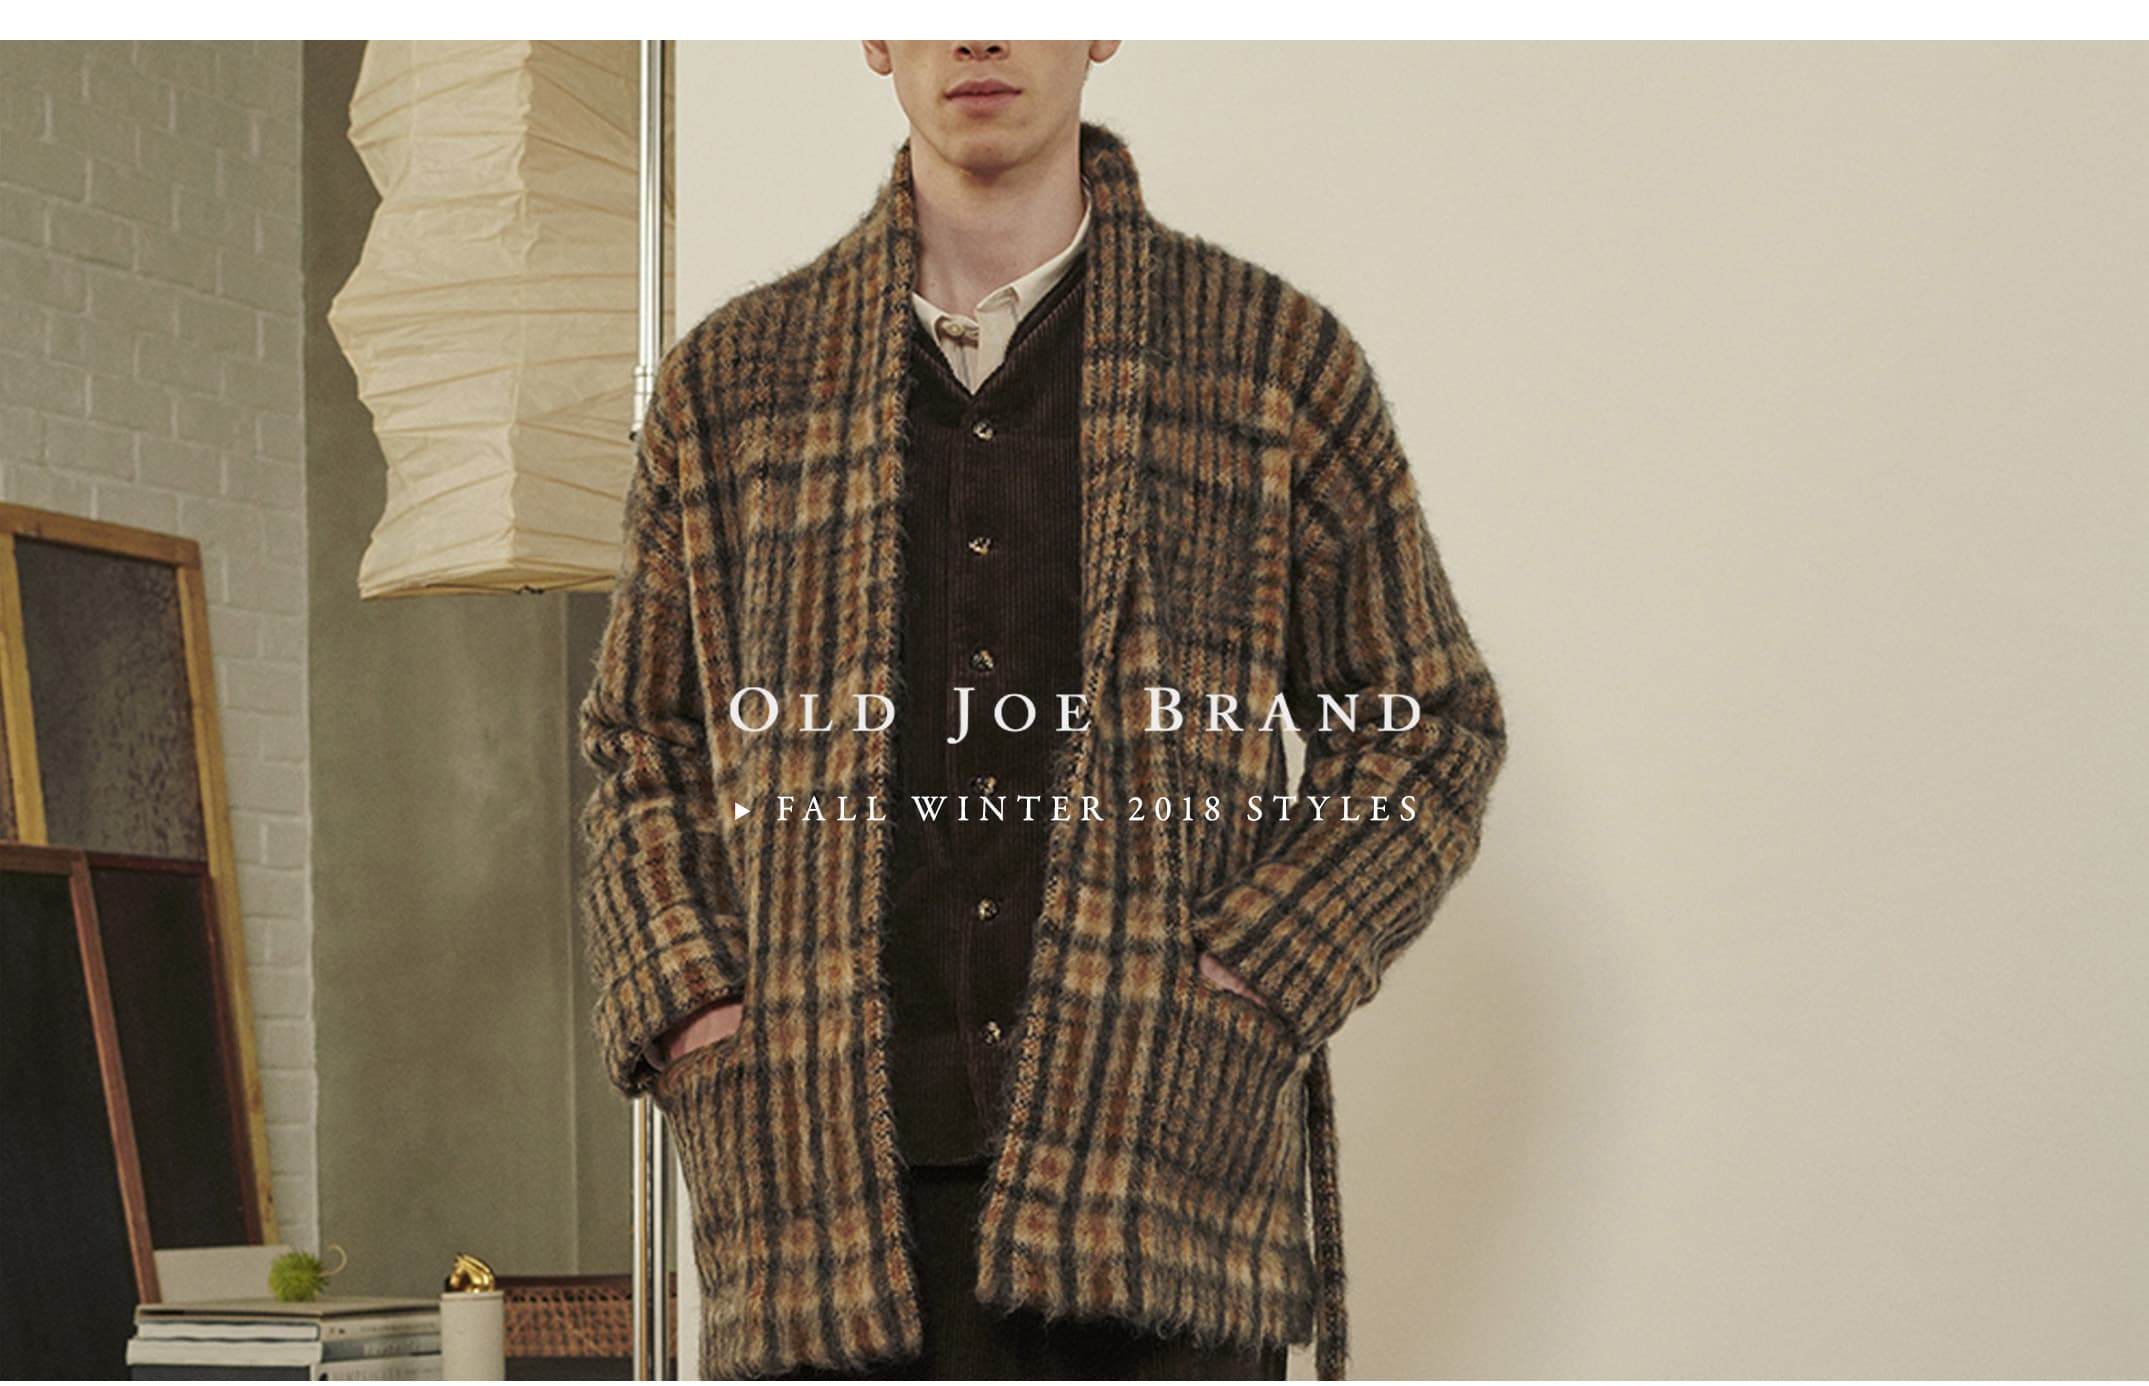 OLD JOE 2018 FALL WINTER STYLES